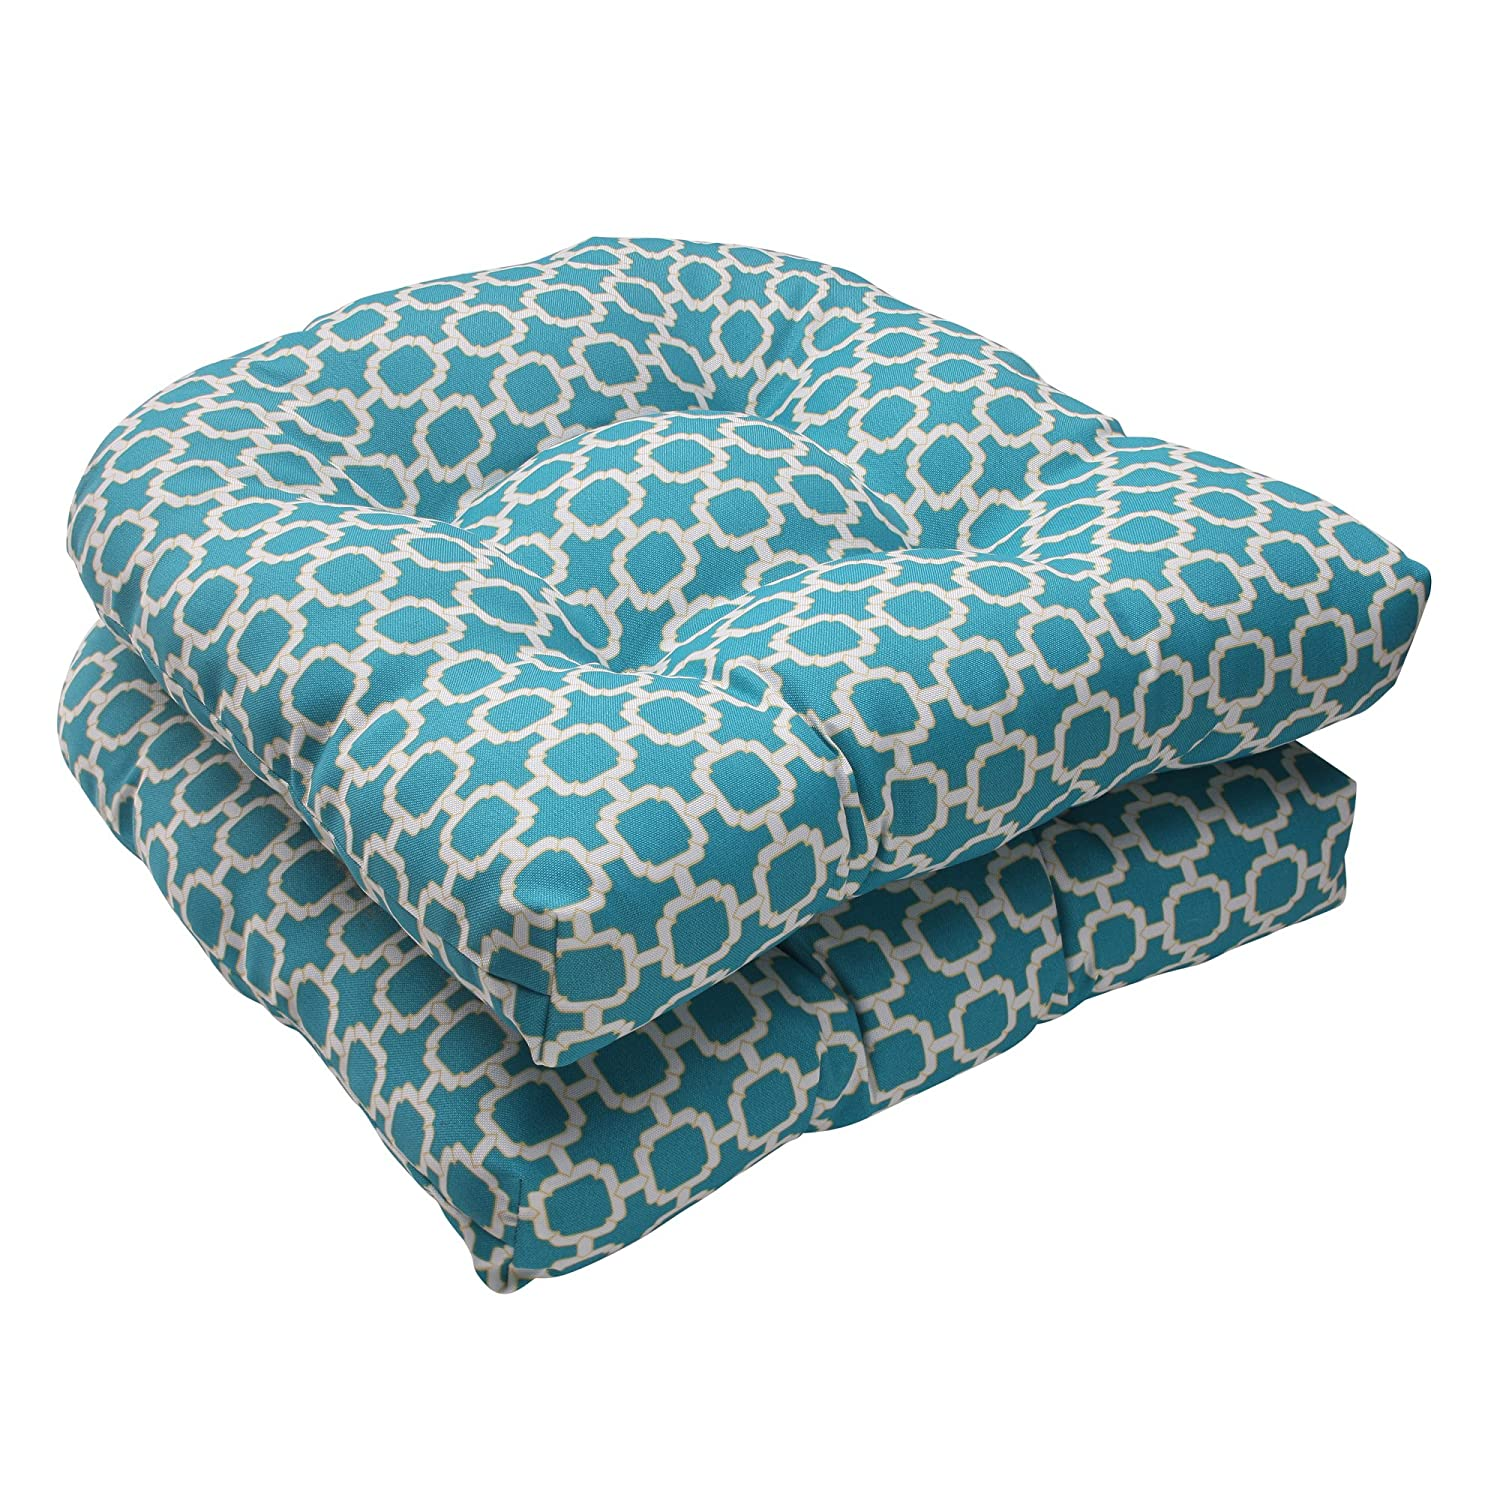 amazoncom pillow perfect hockley wicker seat cushion teal set of 2 home u0026 kitchen - Replacement Cushions For Patio Furniture